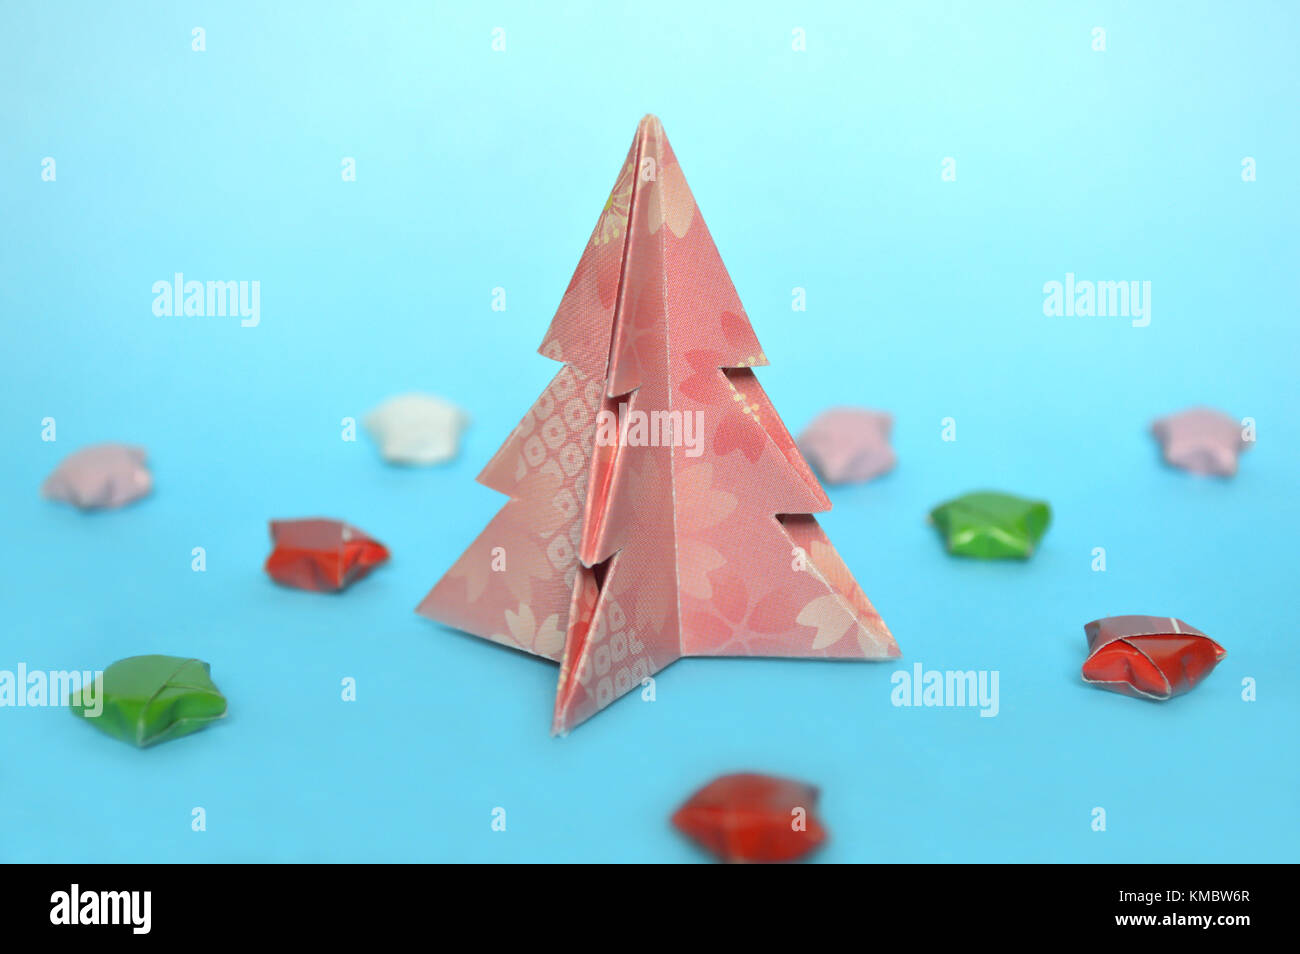 Origami Christmas Star Stock Photos Ornaments On A Diagram Tree Blue Background Image